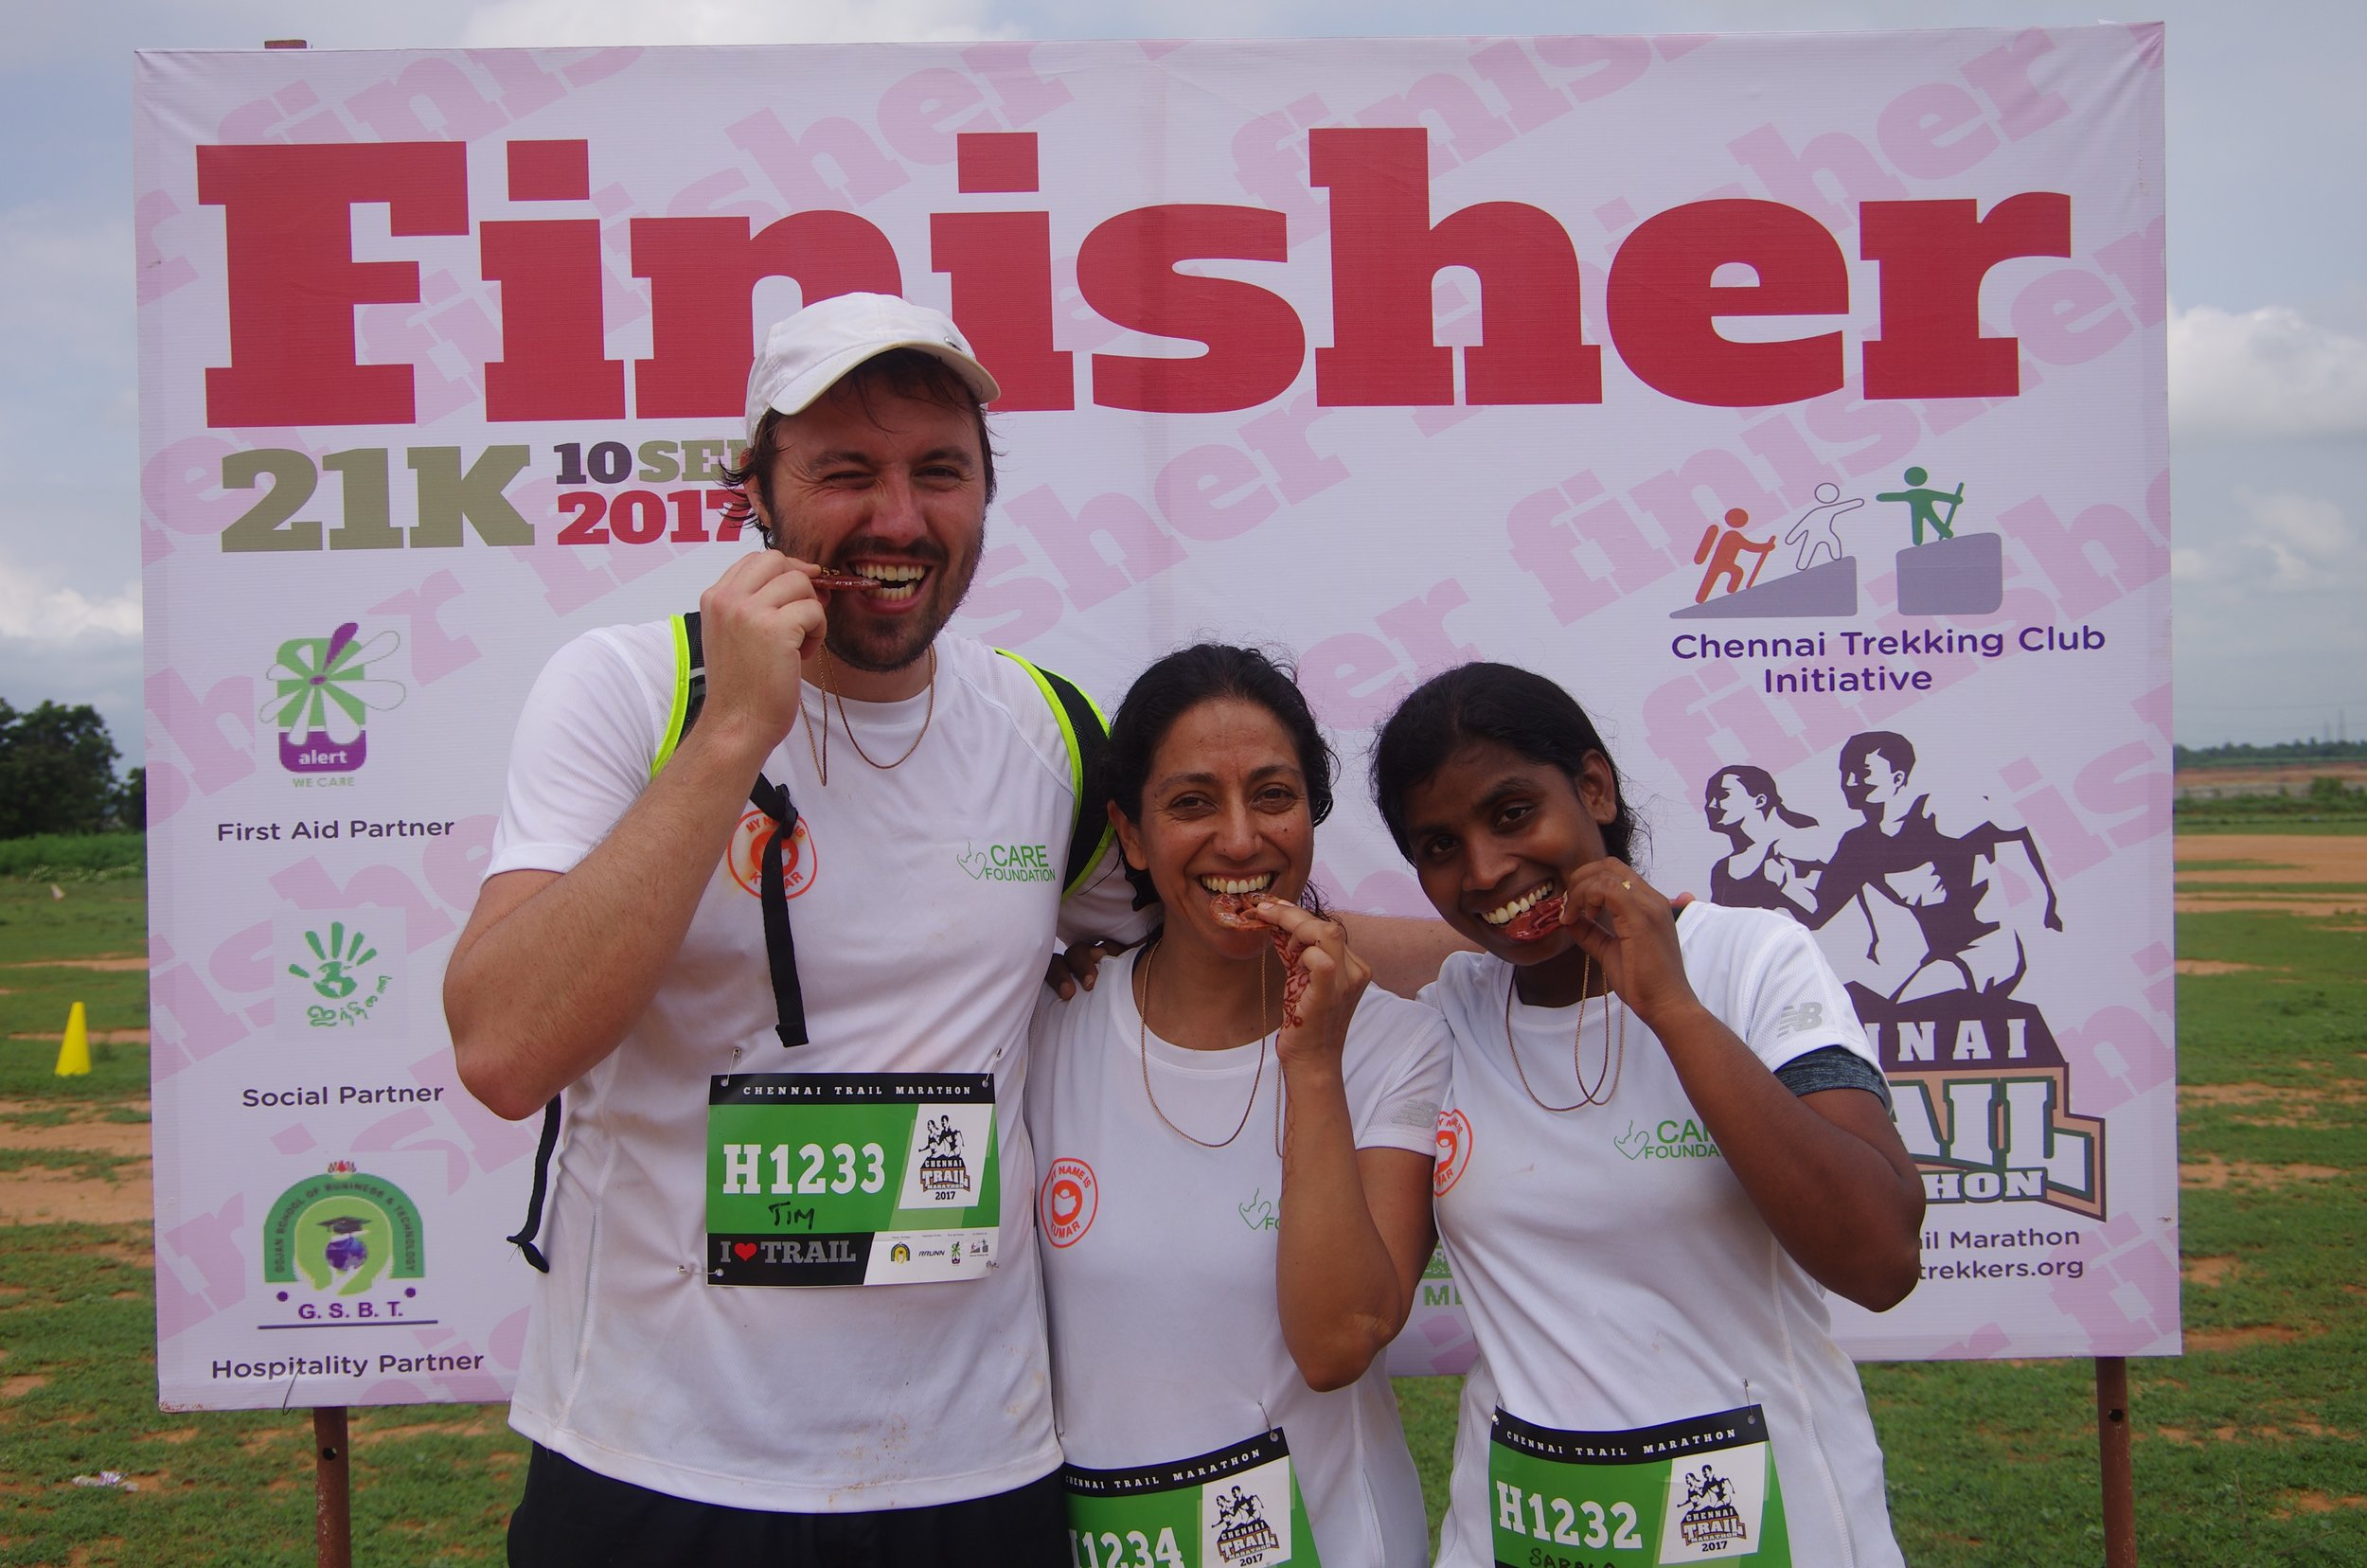 Post half marathon celebratory photo. Me (centre) with Tim (Co-founder) and Sarala (Project Manager)